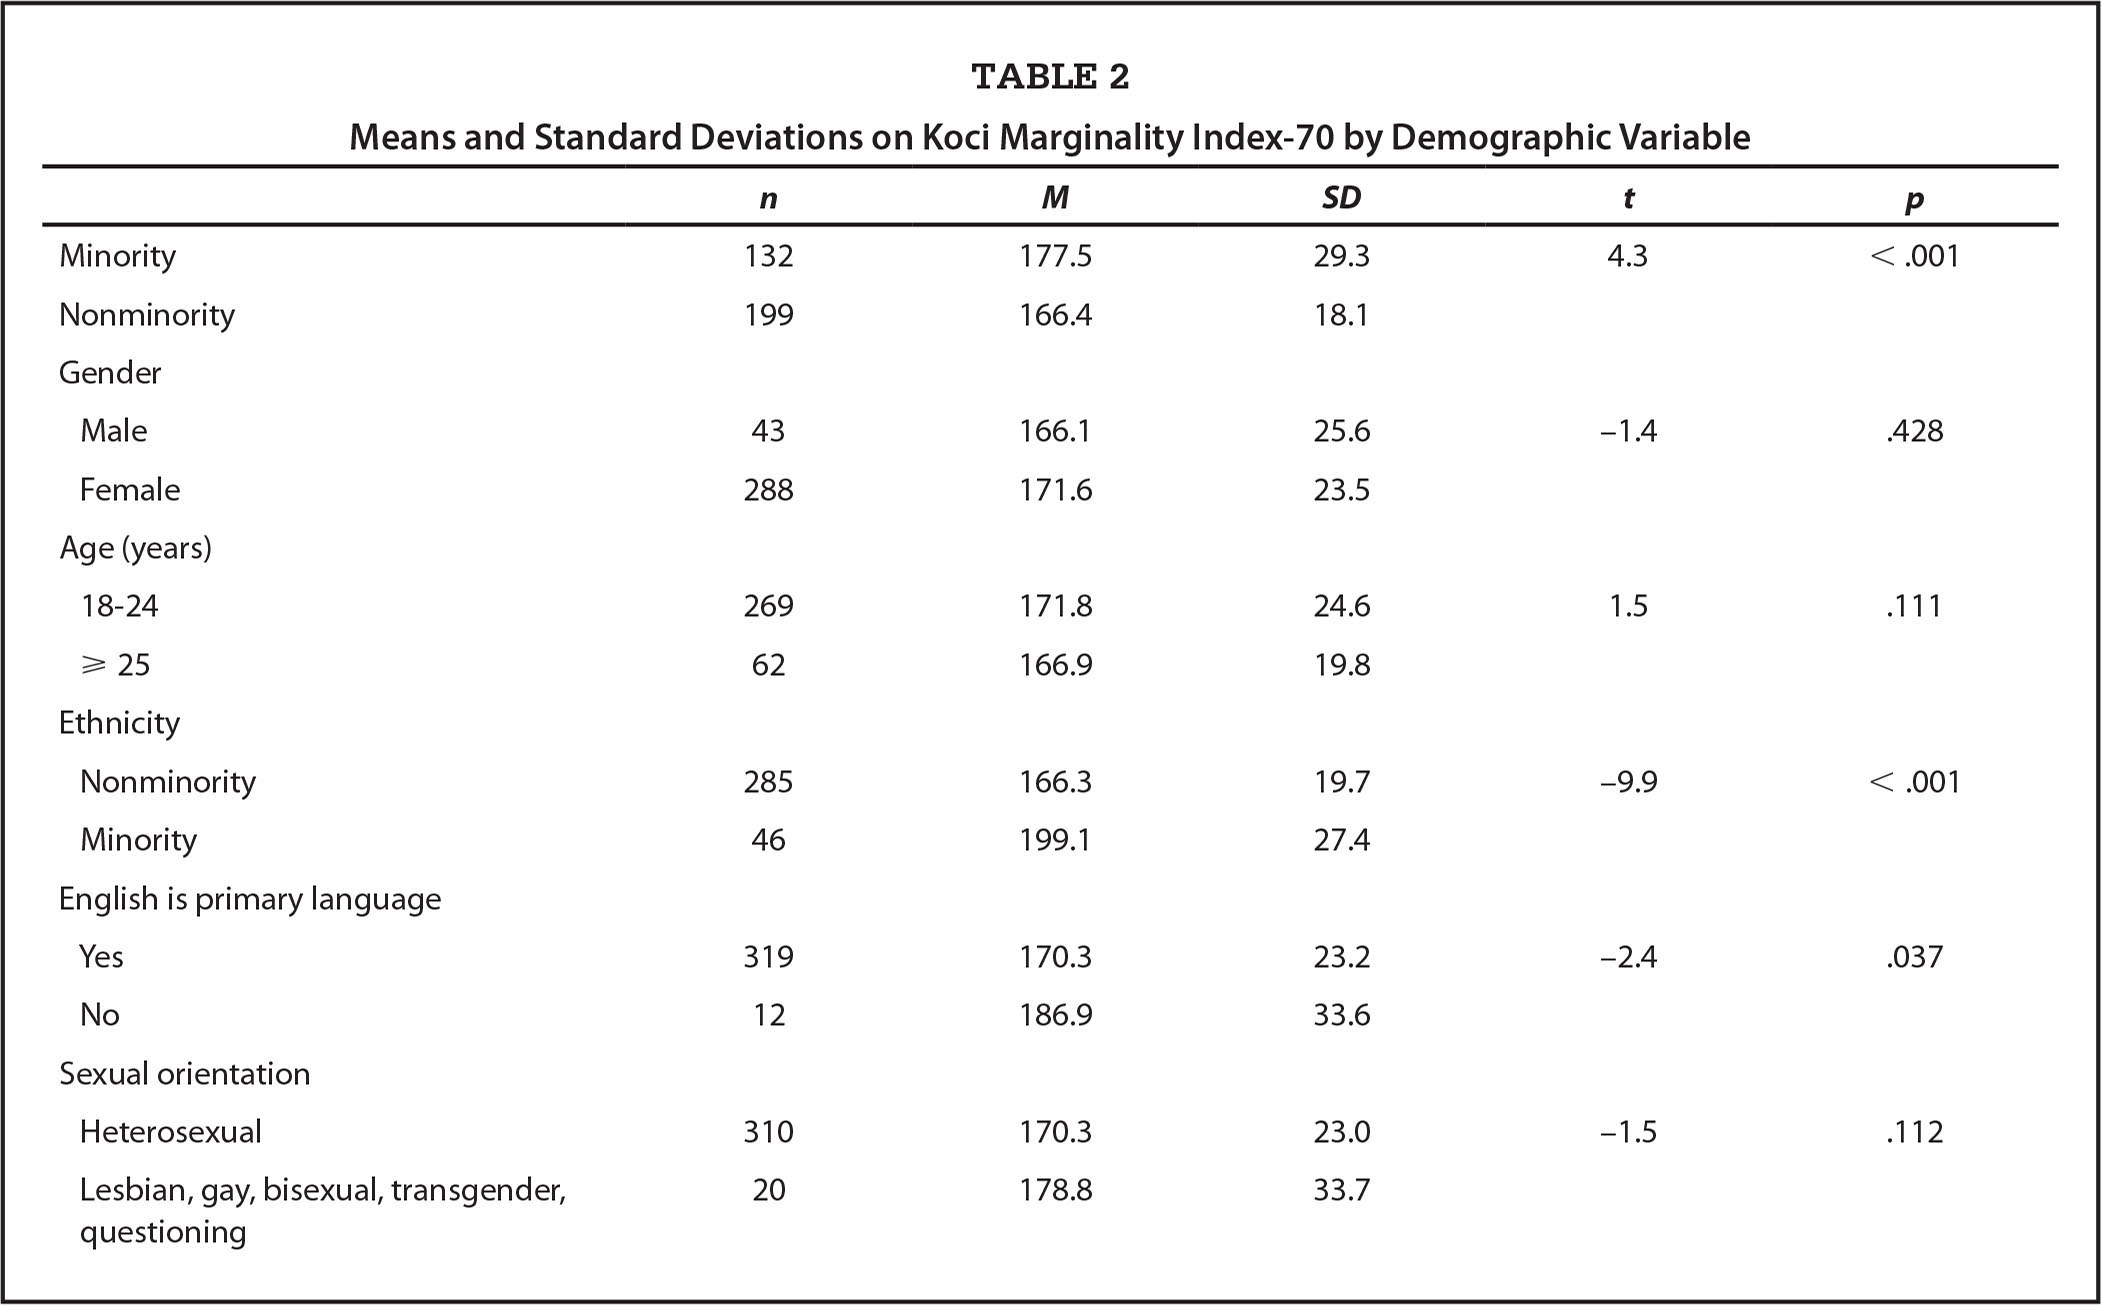 Means and Standard Deviations on Koci Marginality Index-70 by Demographic Variable